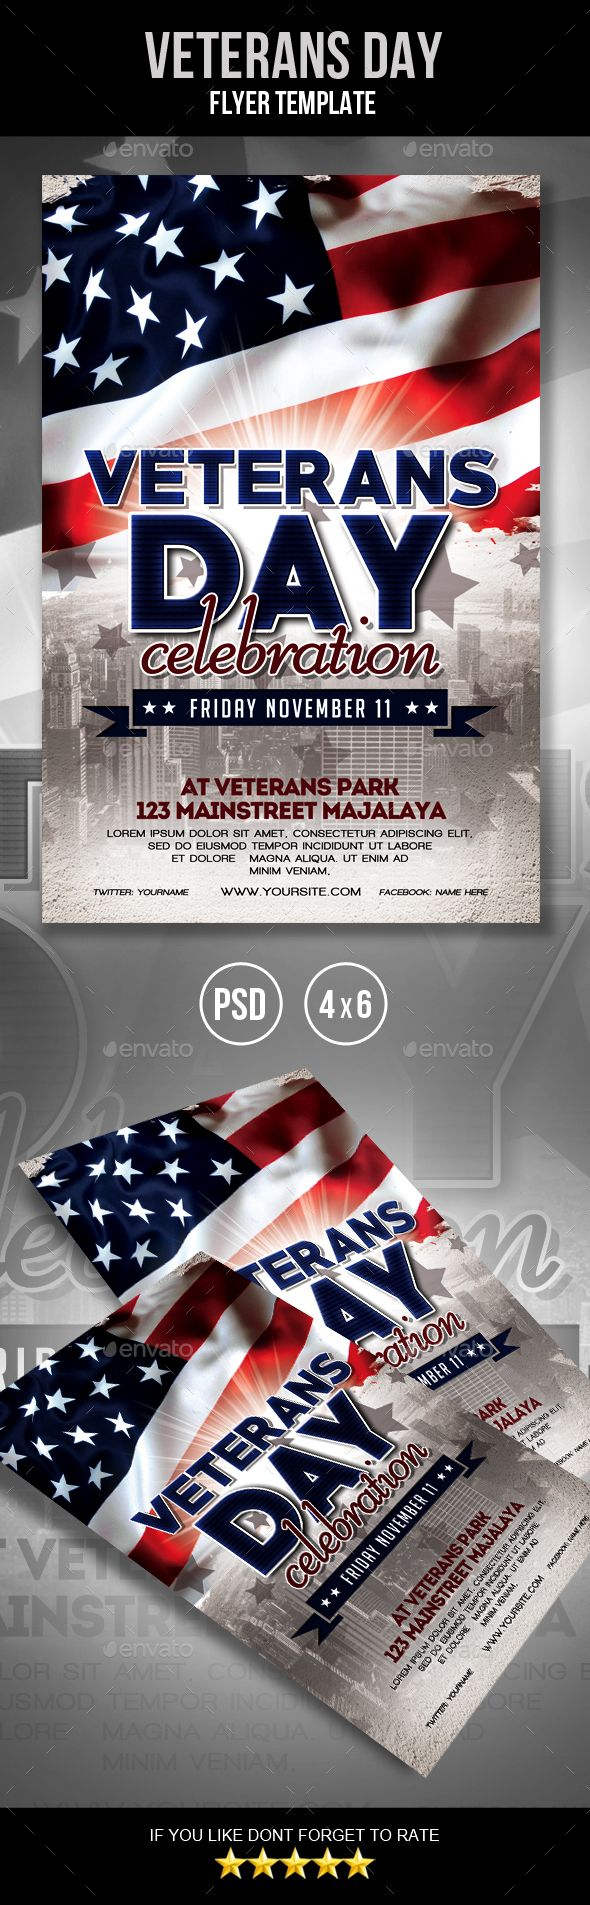 Veterans Day Flyer  Flyer Template Template And Event Flyers